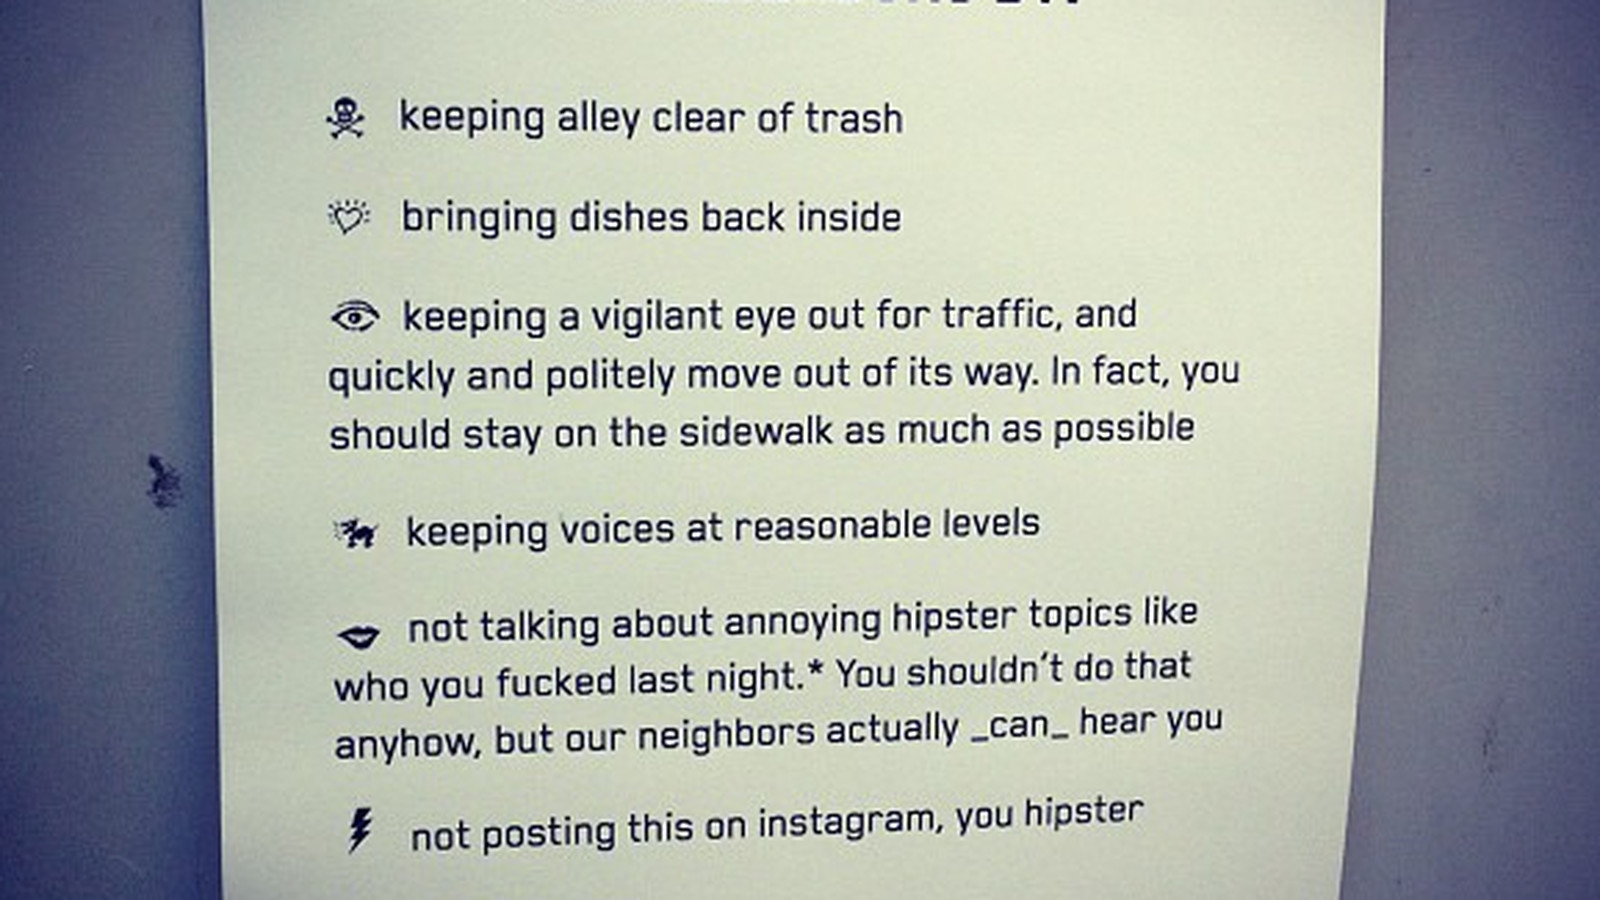 How To Delete Instagram Pictures Sf Coffee Shop Bans 'annoying Hipster  Topics,' Instagram